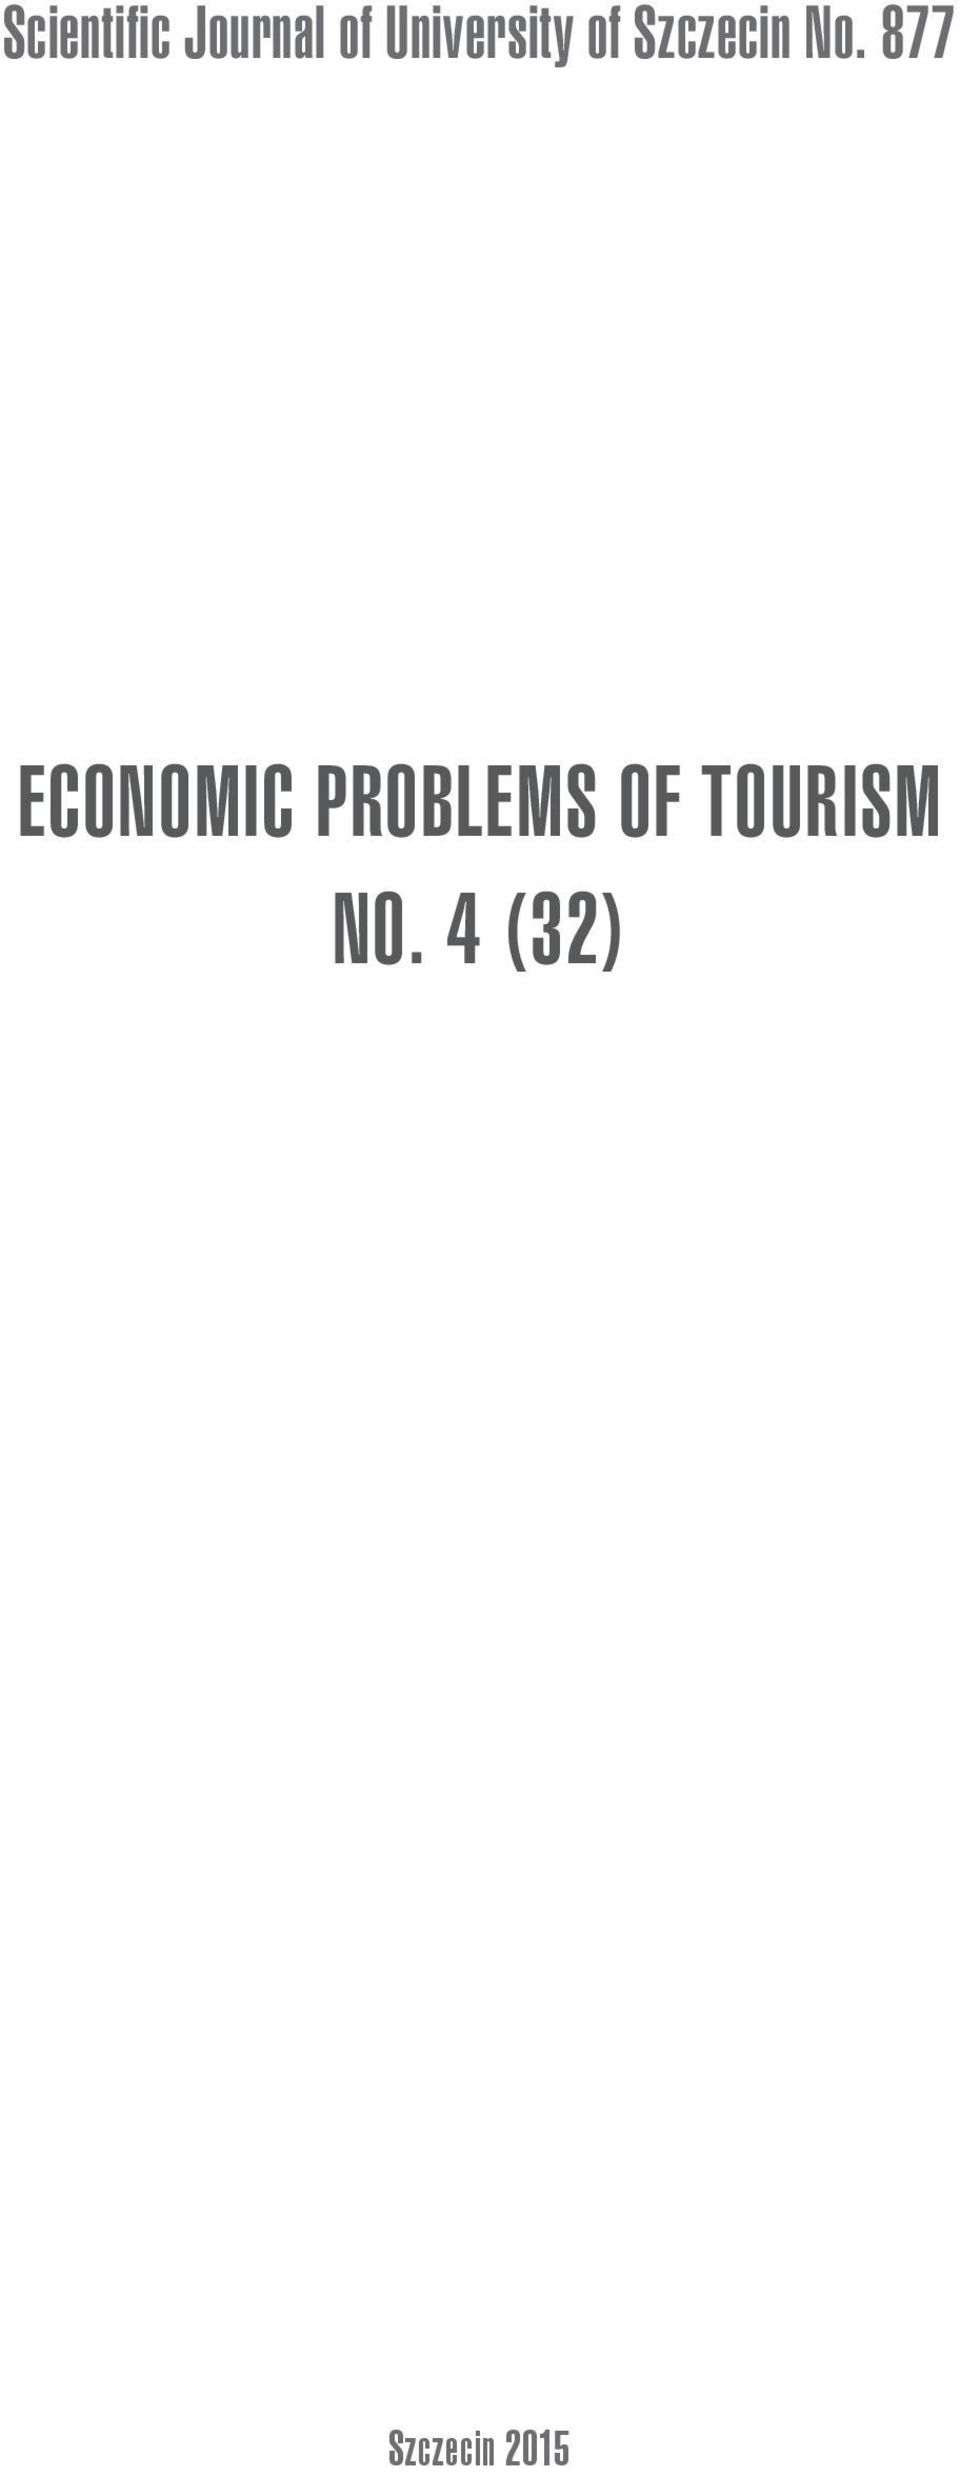 877 ECONOMIC PROBLEMS OF